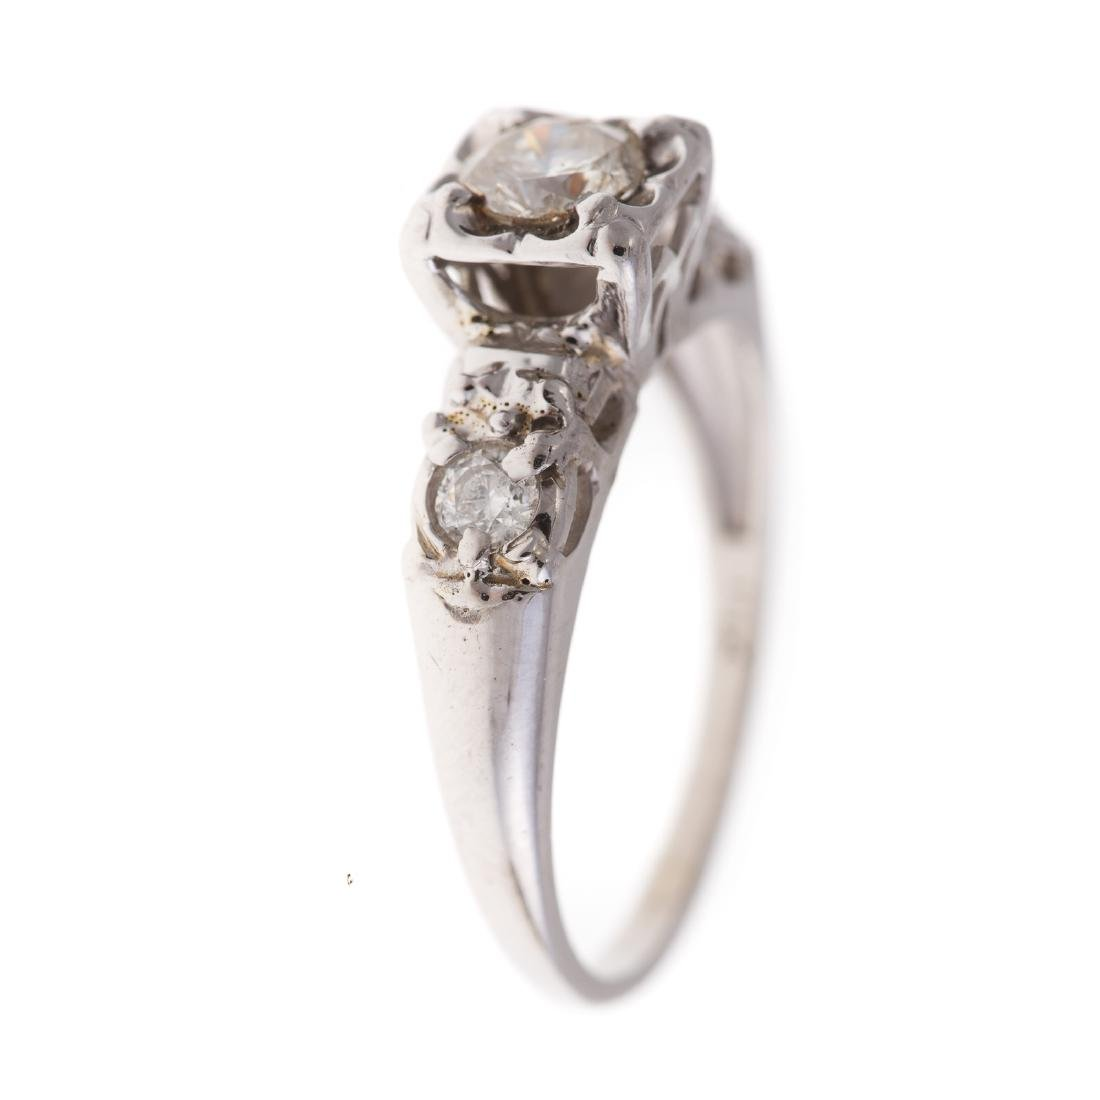 A Lady's Diamond Engagement Set in 14K White Gold - 2